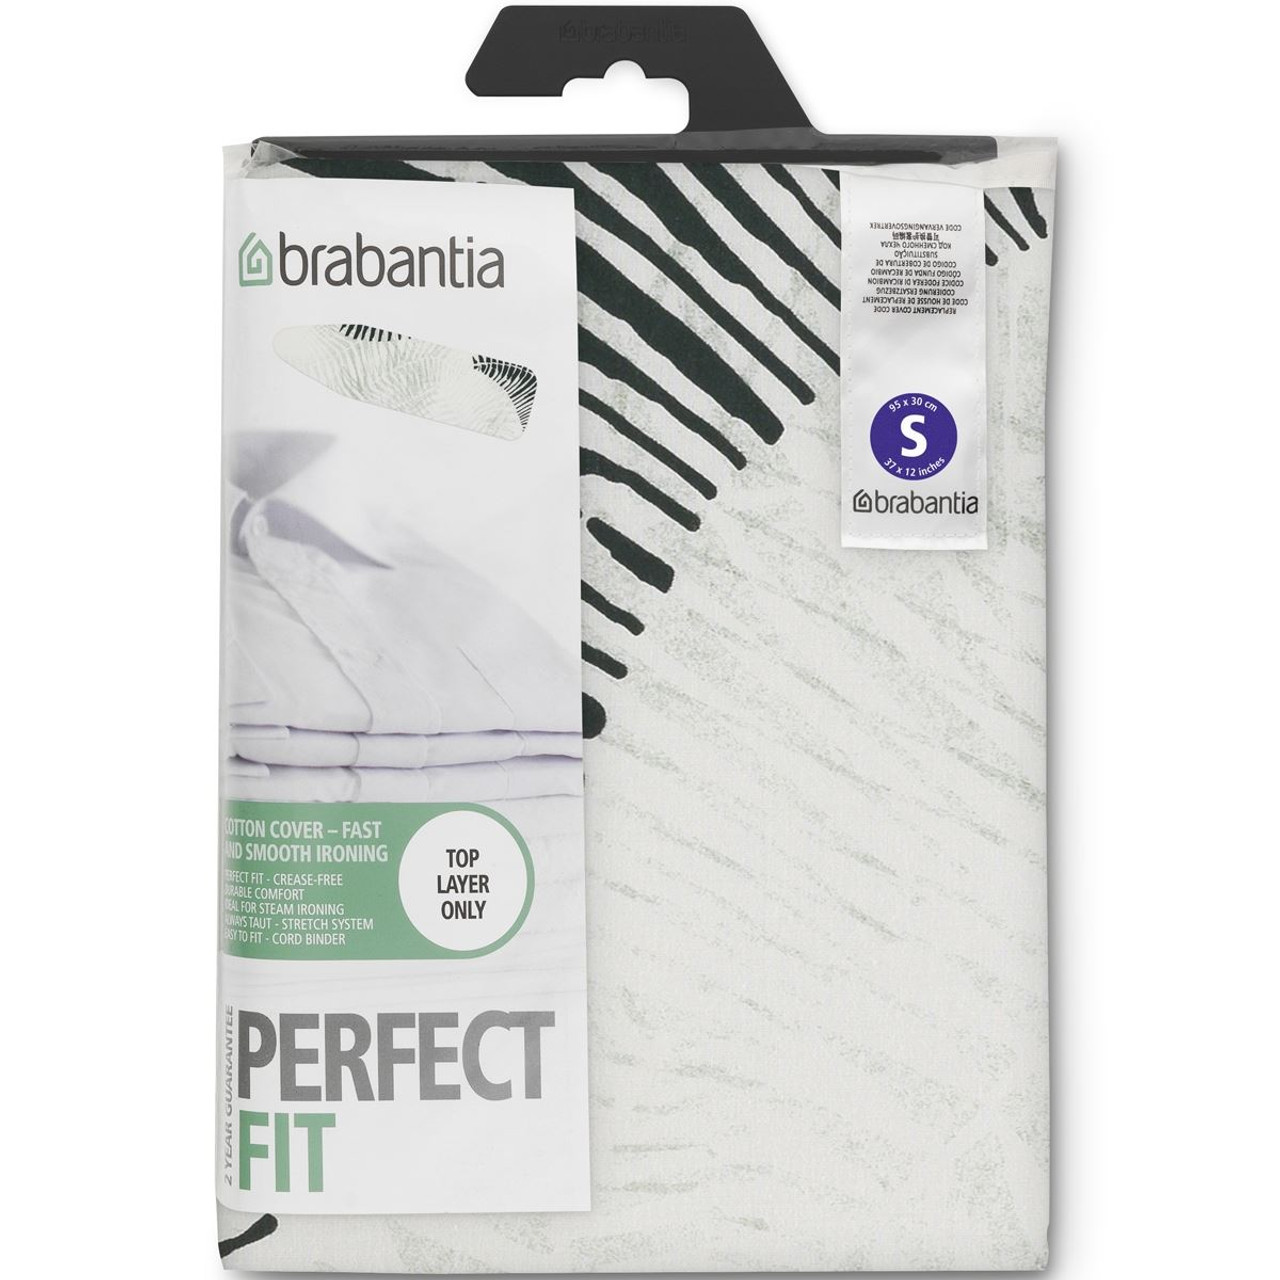 Brabantia Tabletop Ironing Board S Cover